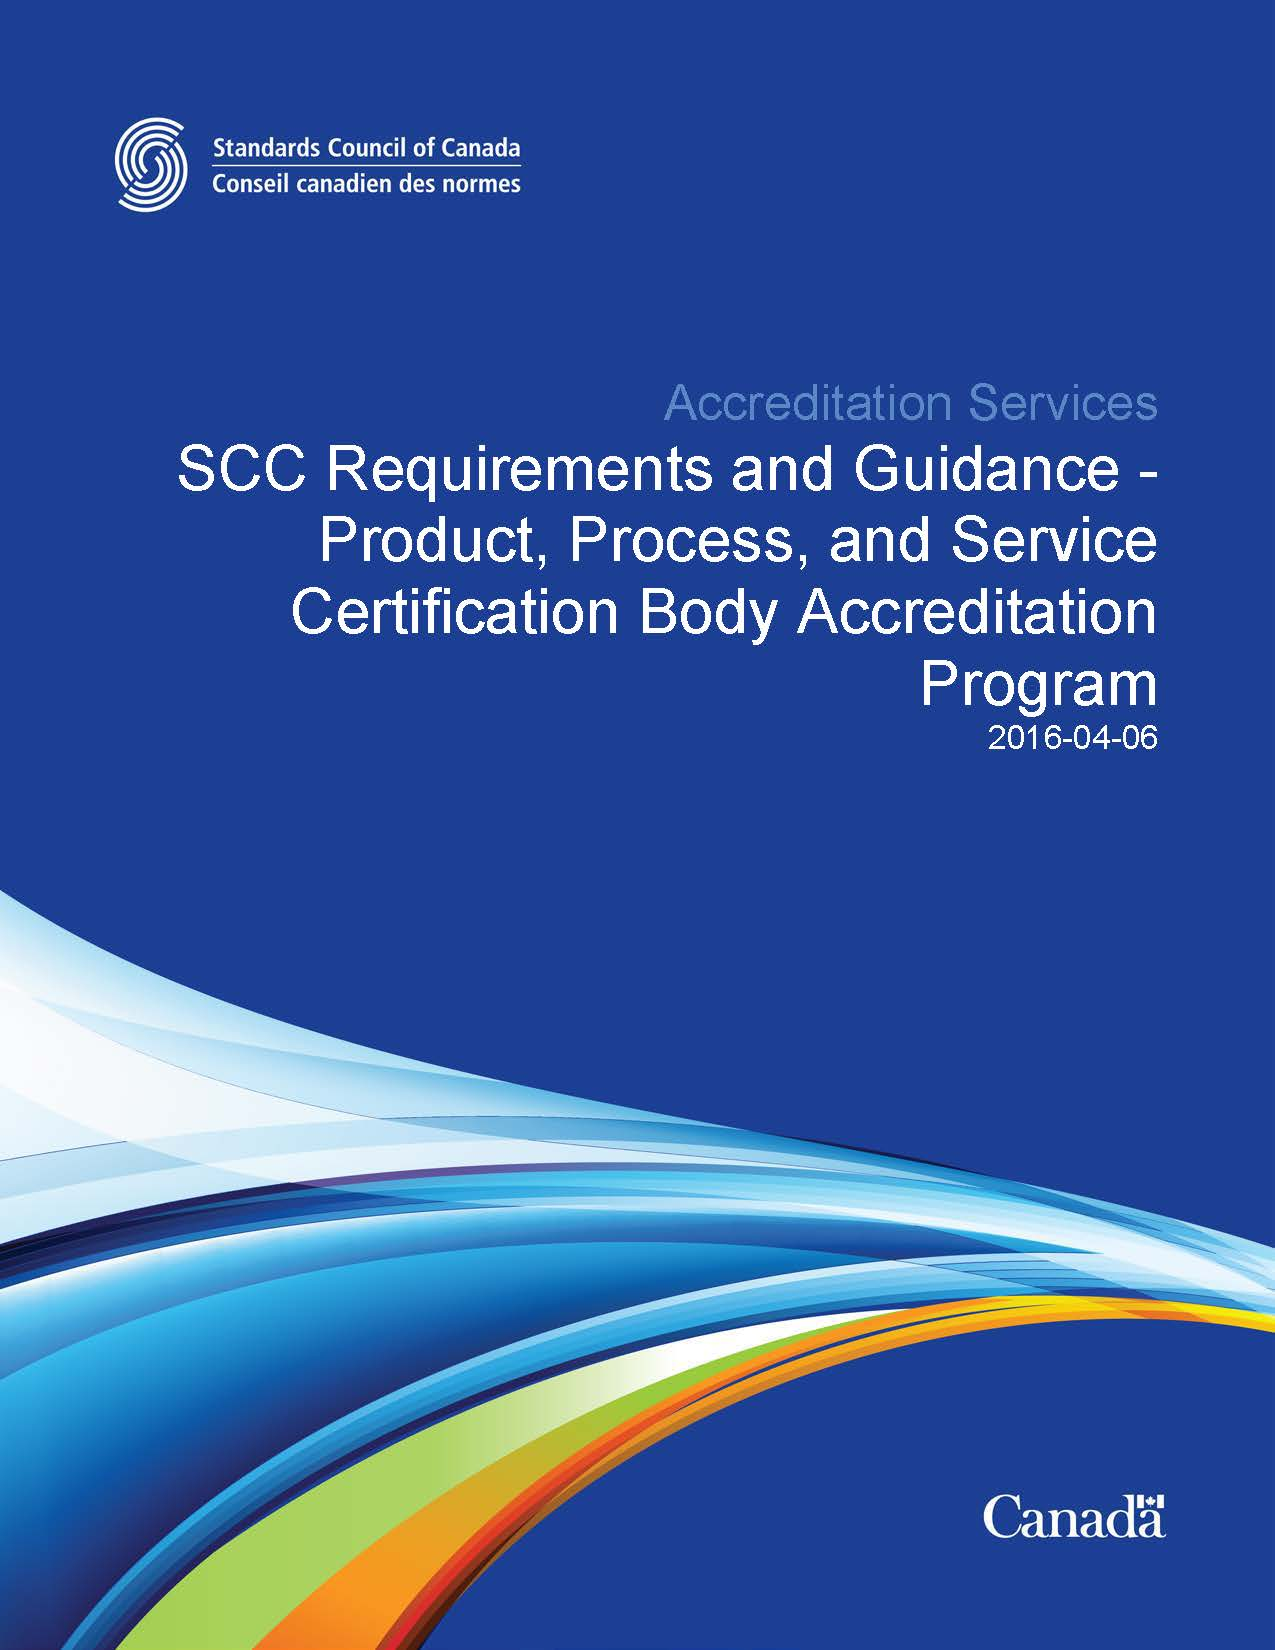 Scc Accreditation Program For Product Process And Service